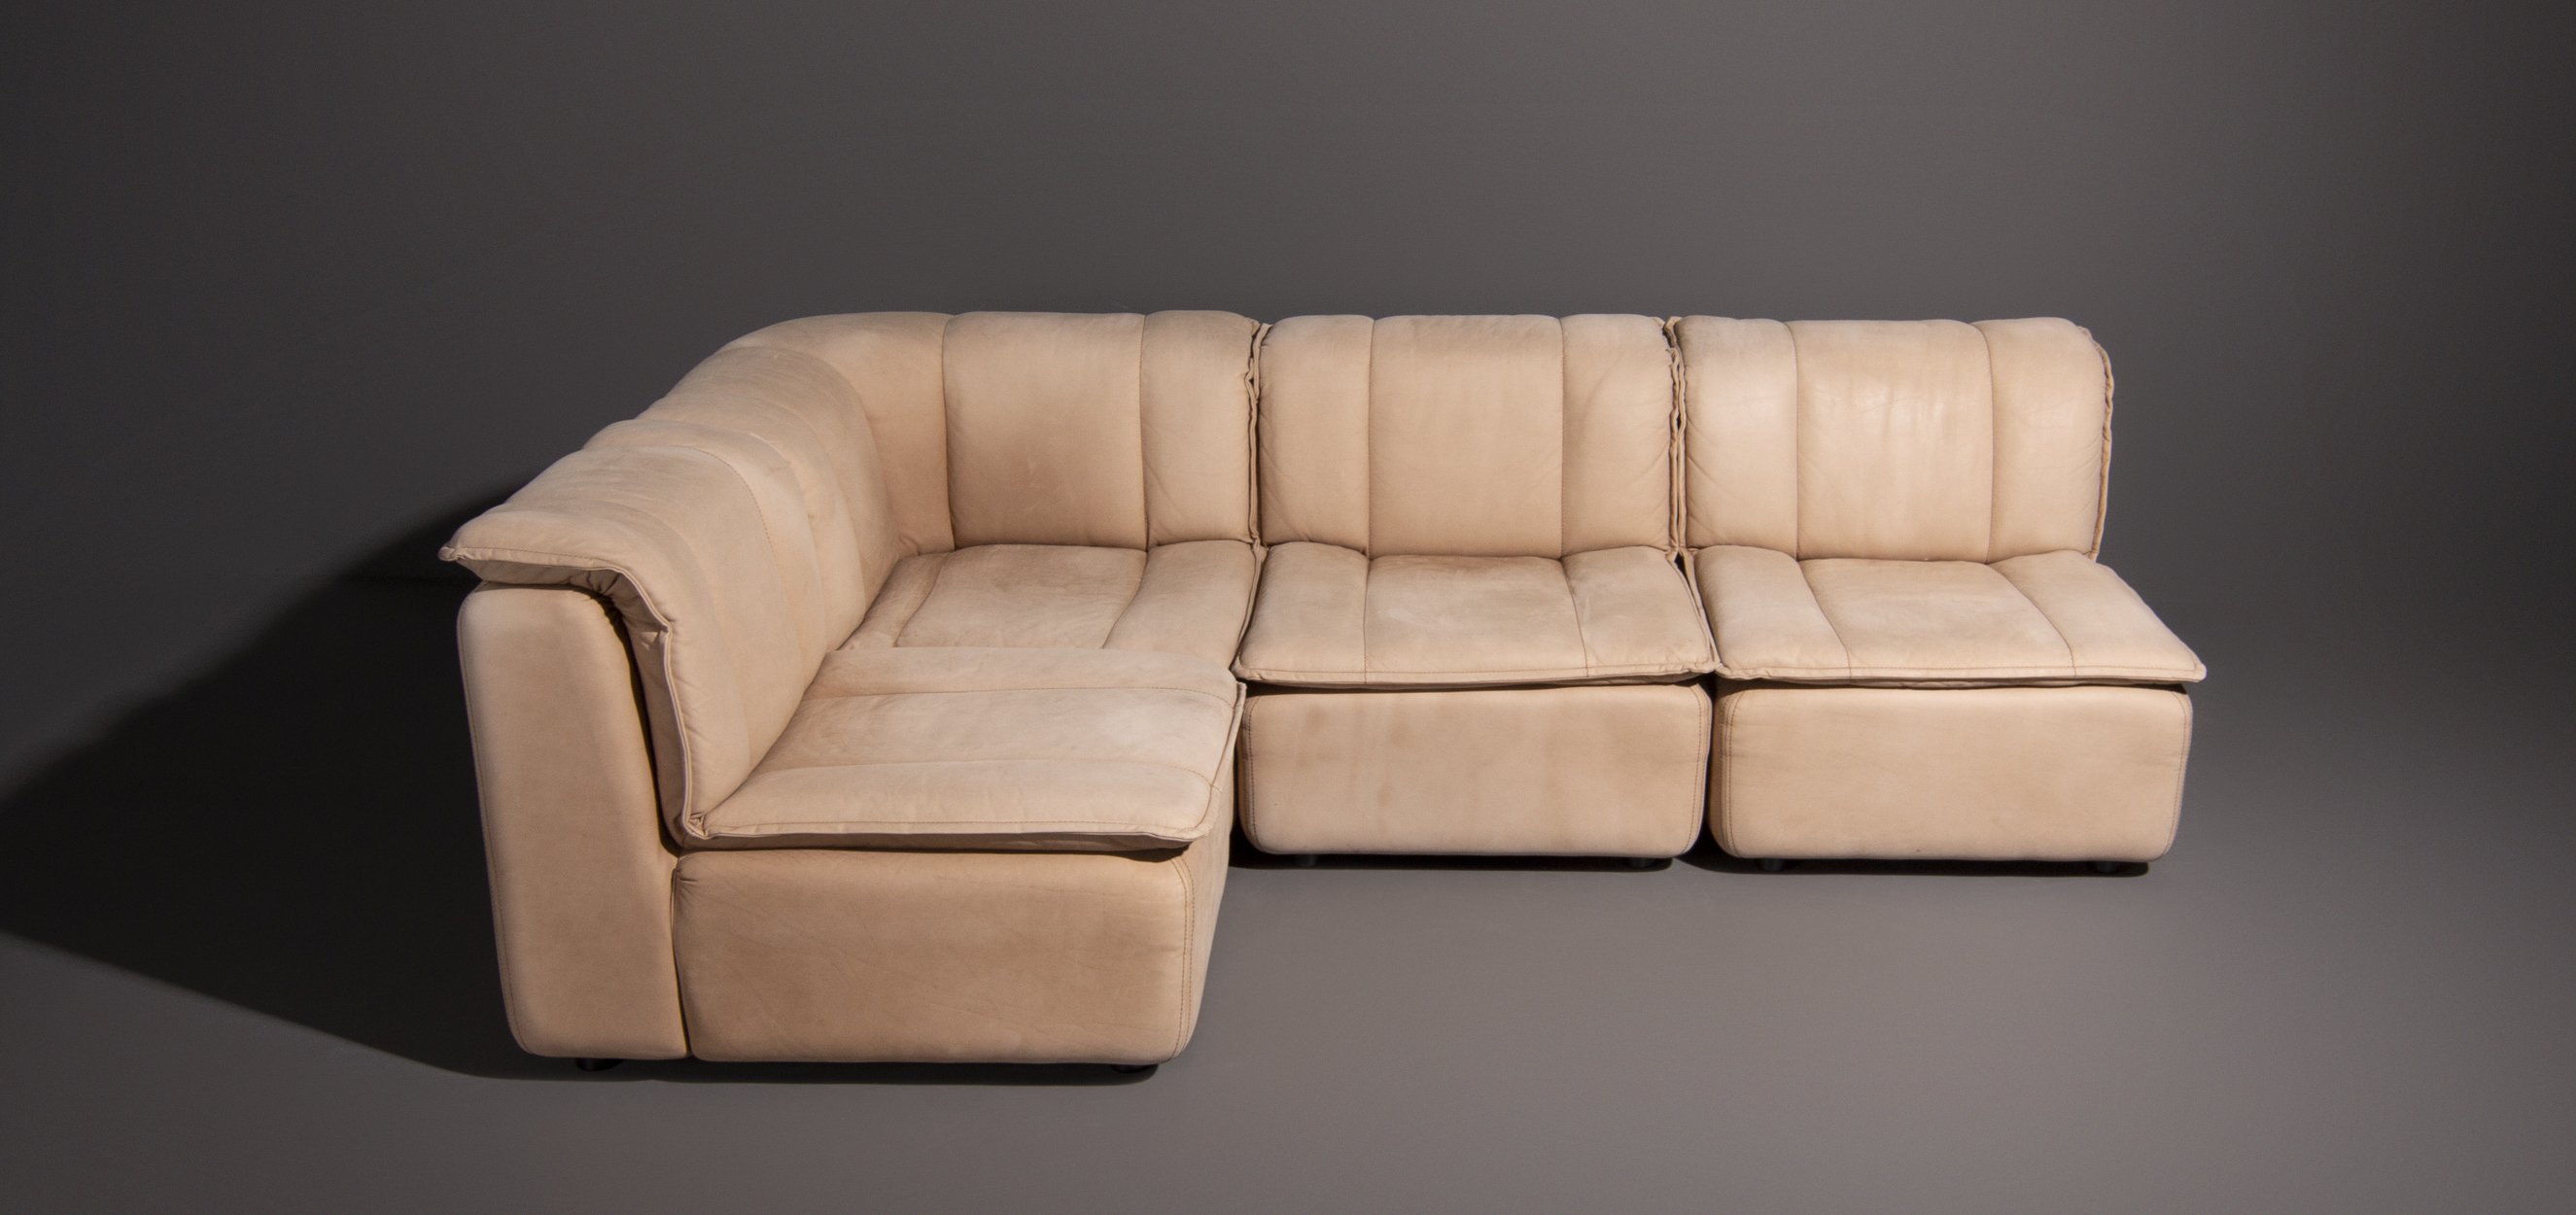 Design Elementen Bank.Vintage Design Element Sofa Upholstered In Upholstered In Natural